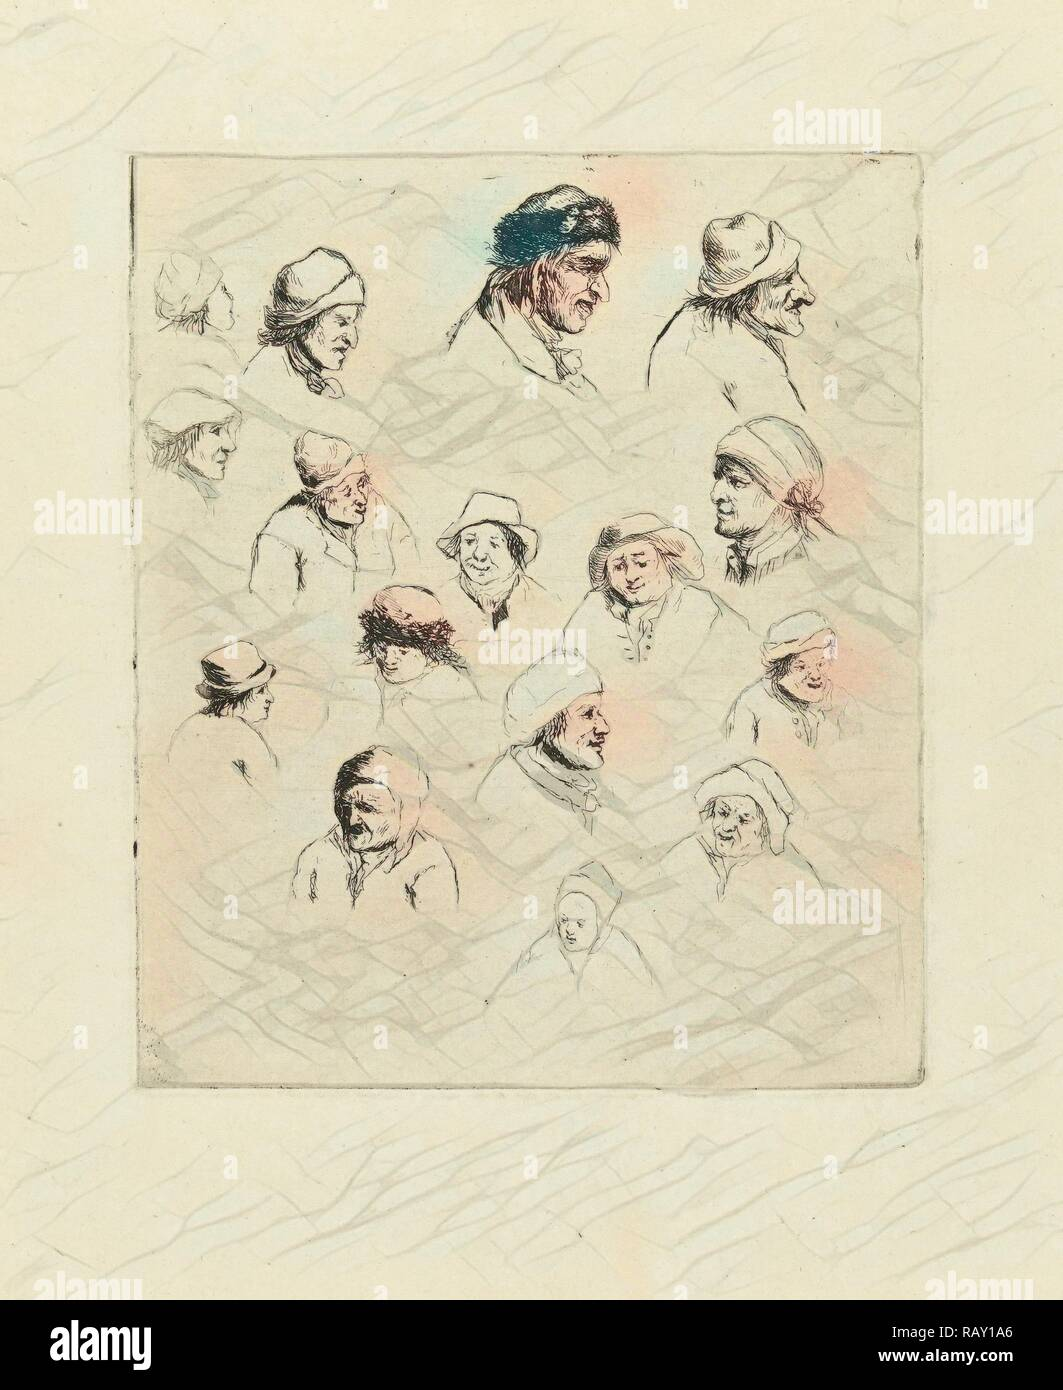 Study Journal sixteen heads, Marie Lambertine Coclers, 1776 - 1815. Reimagined by Gibon. Classic art with a modern reimagined - Stock Image